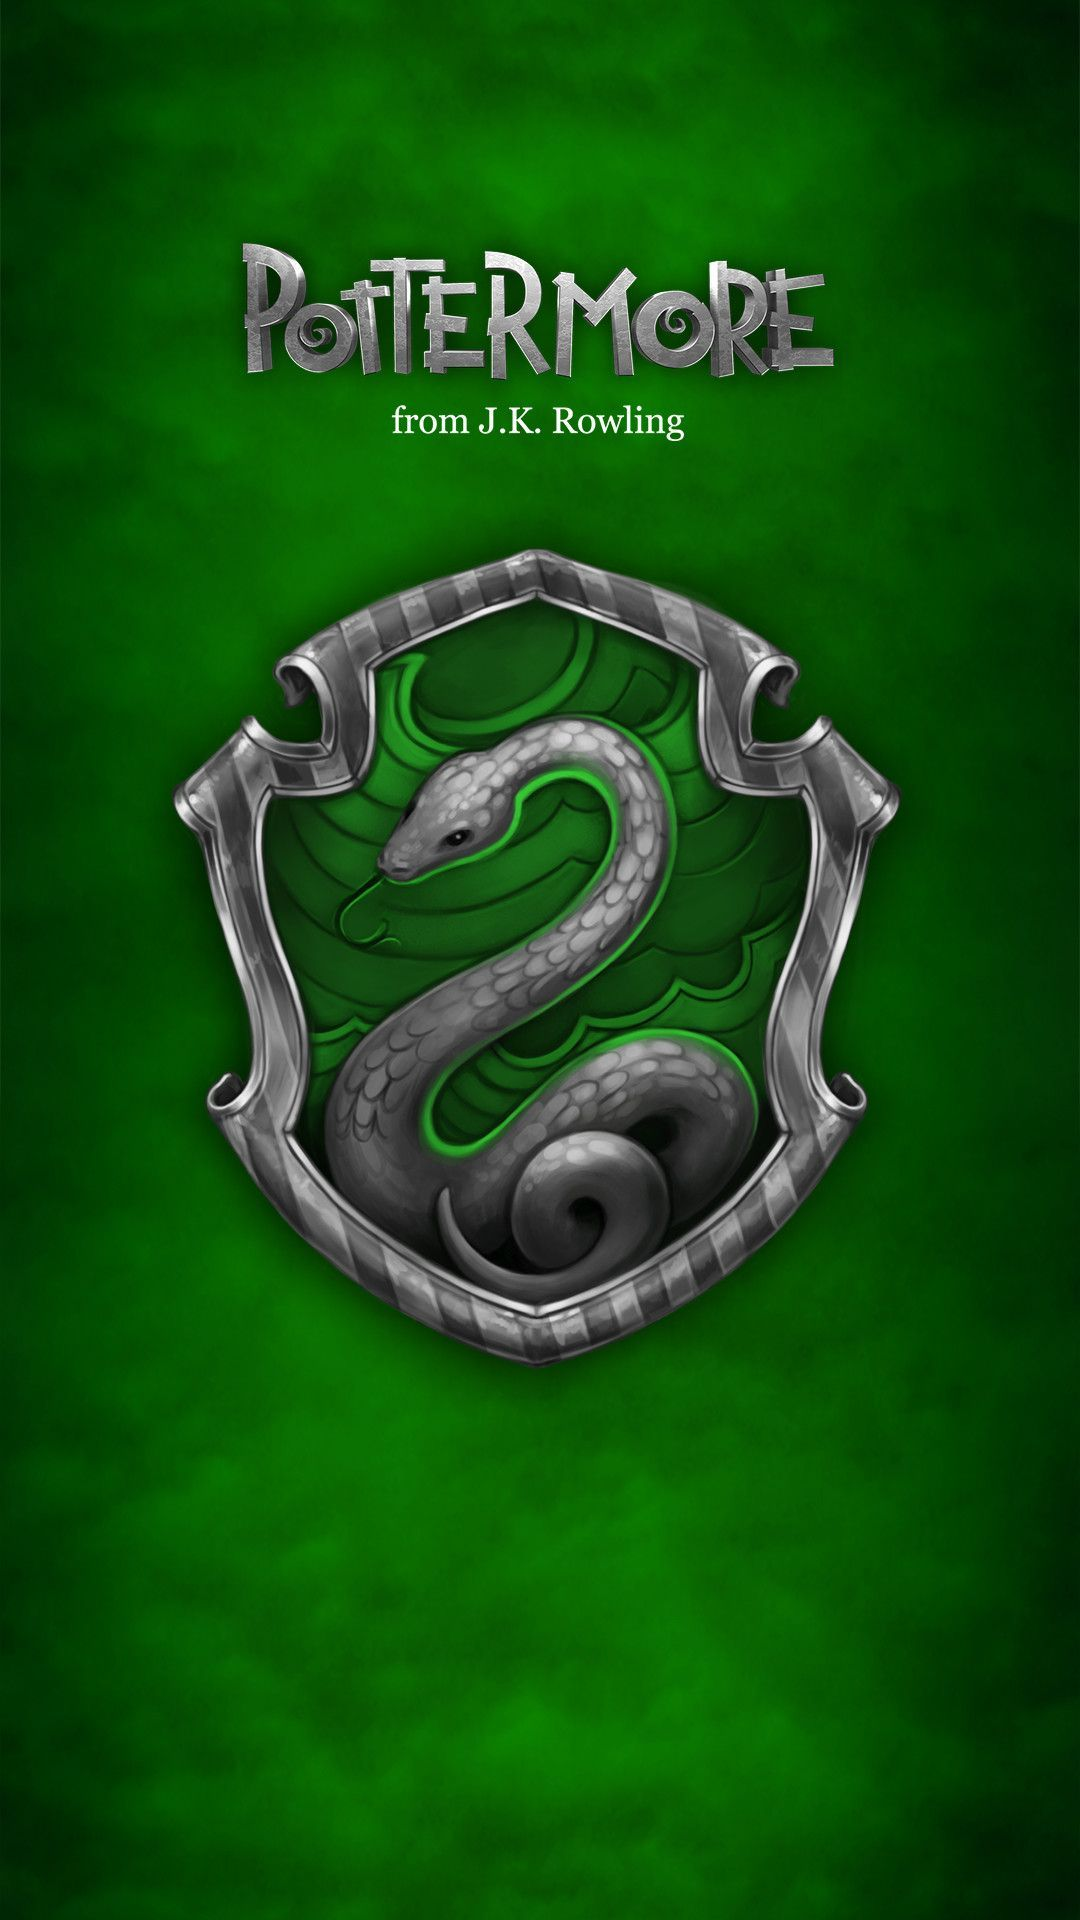 1080x1920 1080x1920 Slytherin iPhone Wallpaper - WallpaperSafari | Harry ...